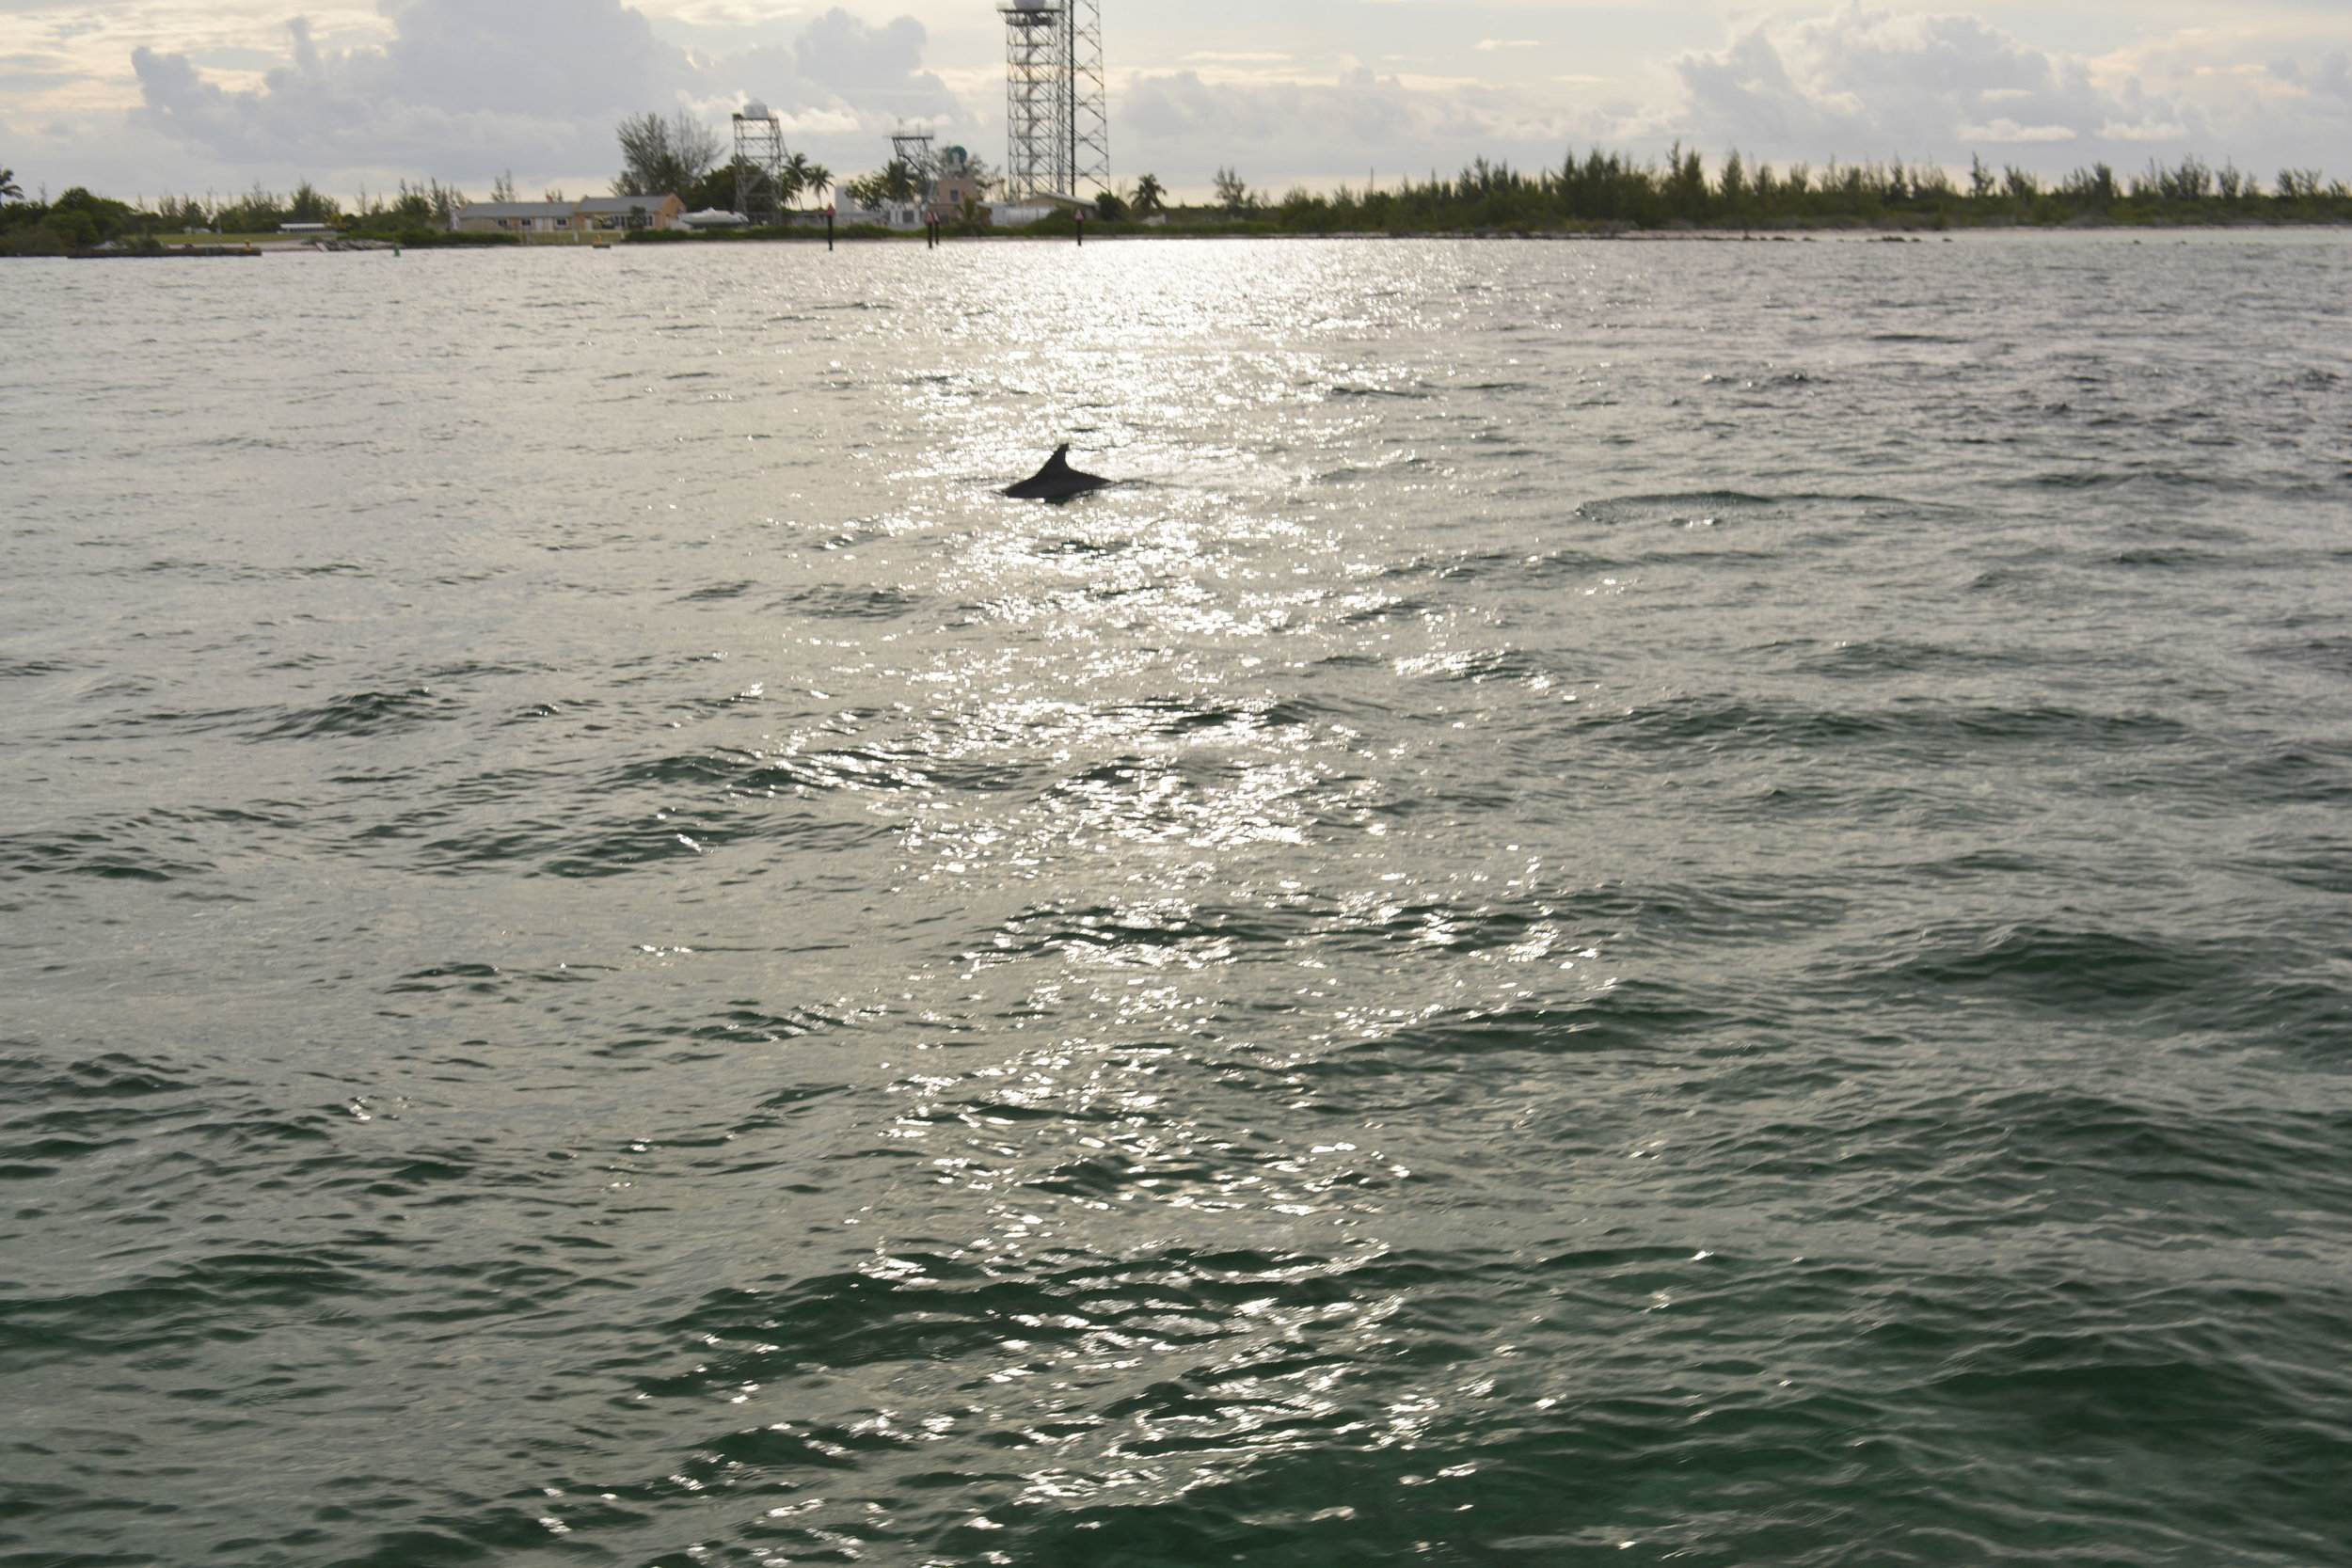 A pod of 15+ dolphins joined the expedition boat just as the sun was setting